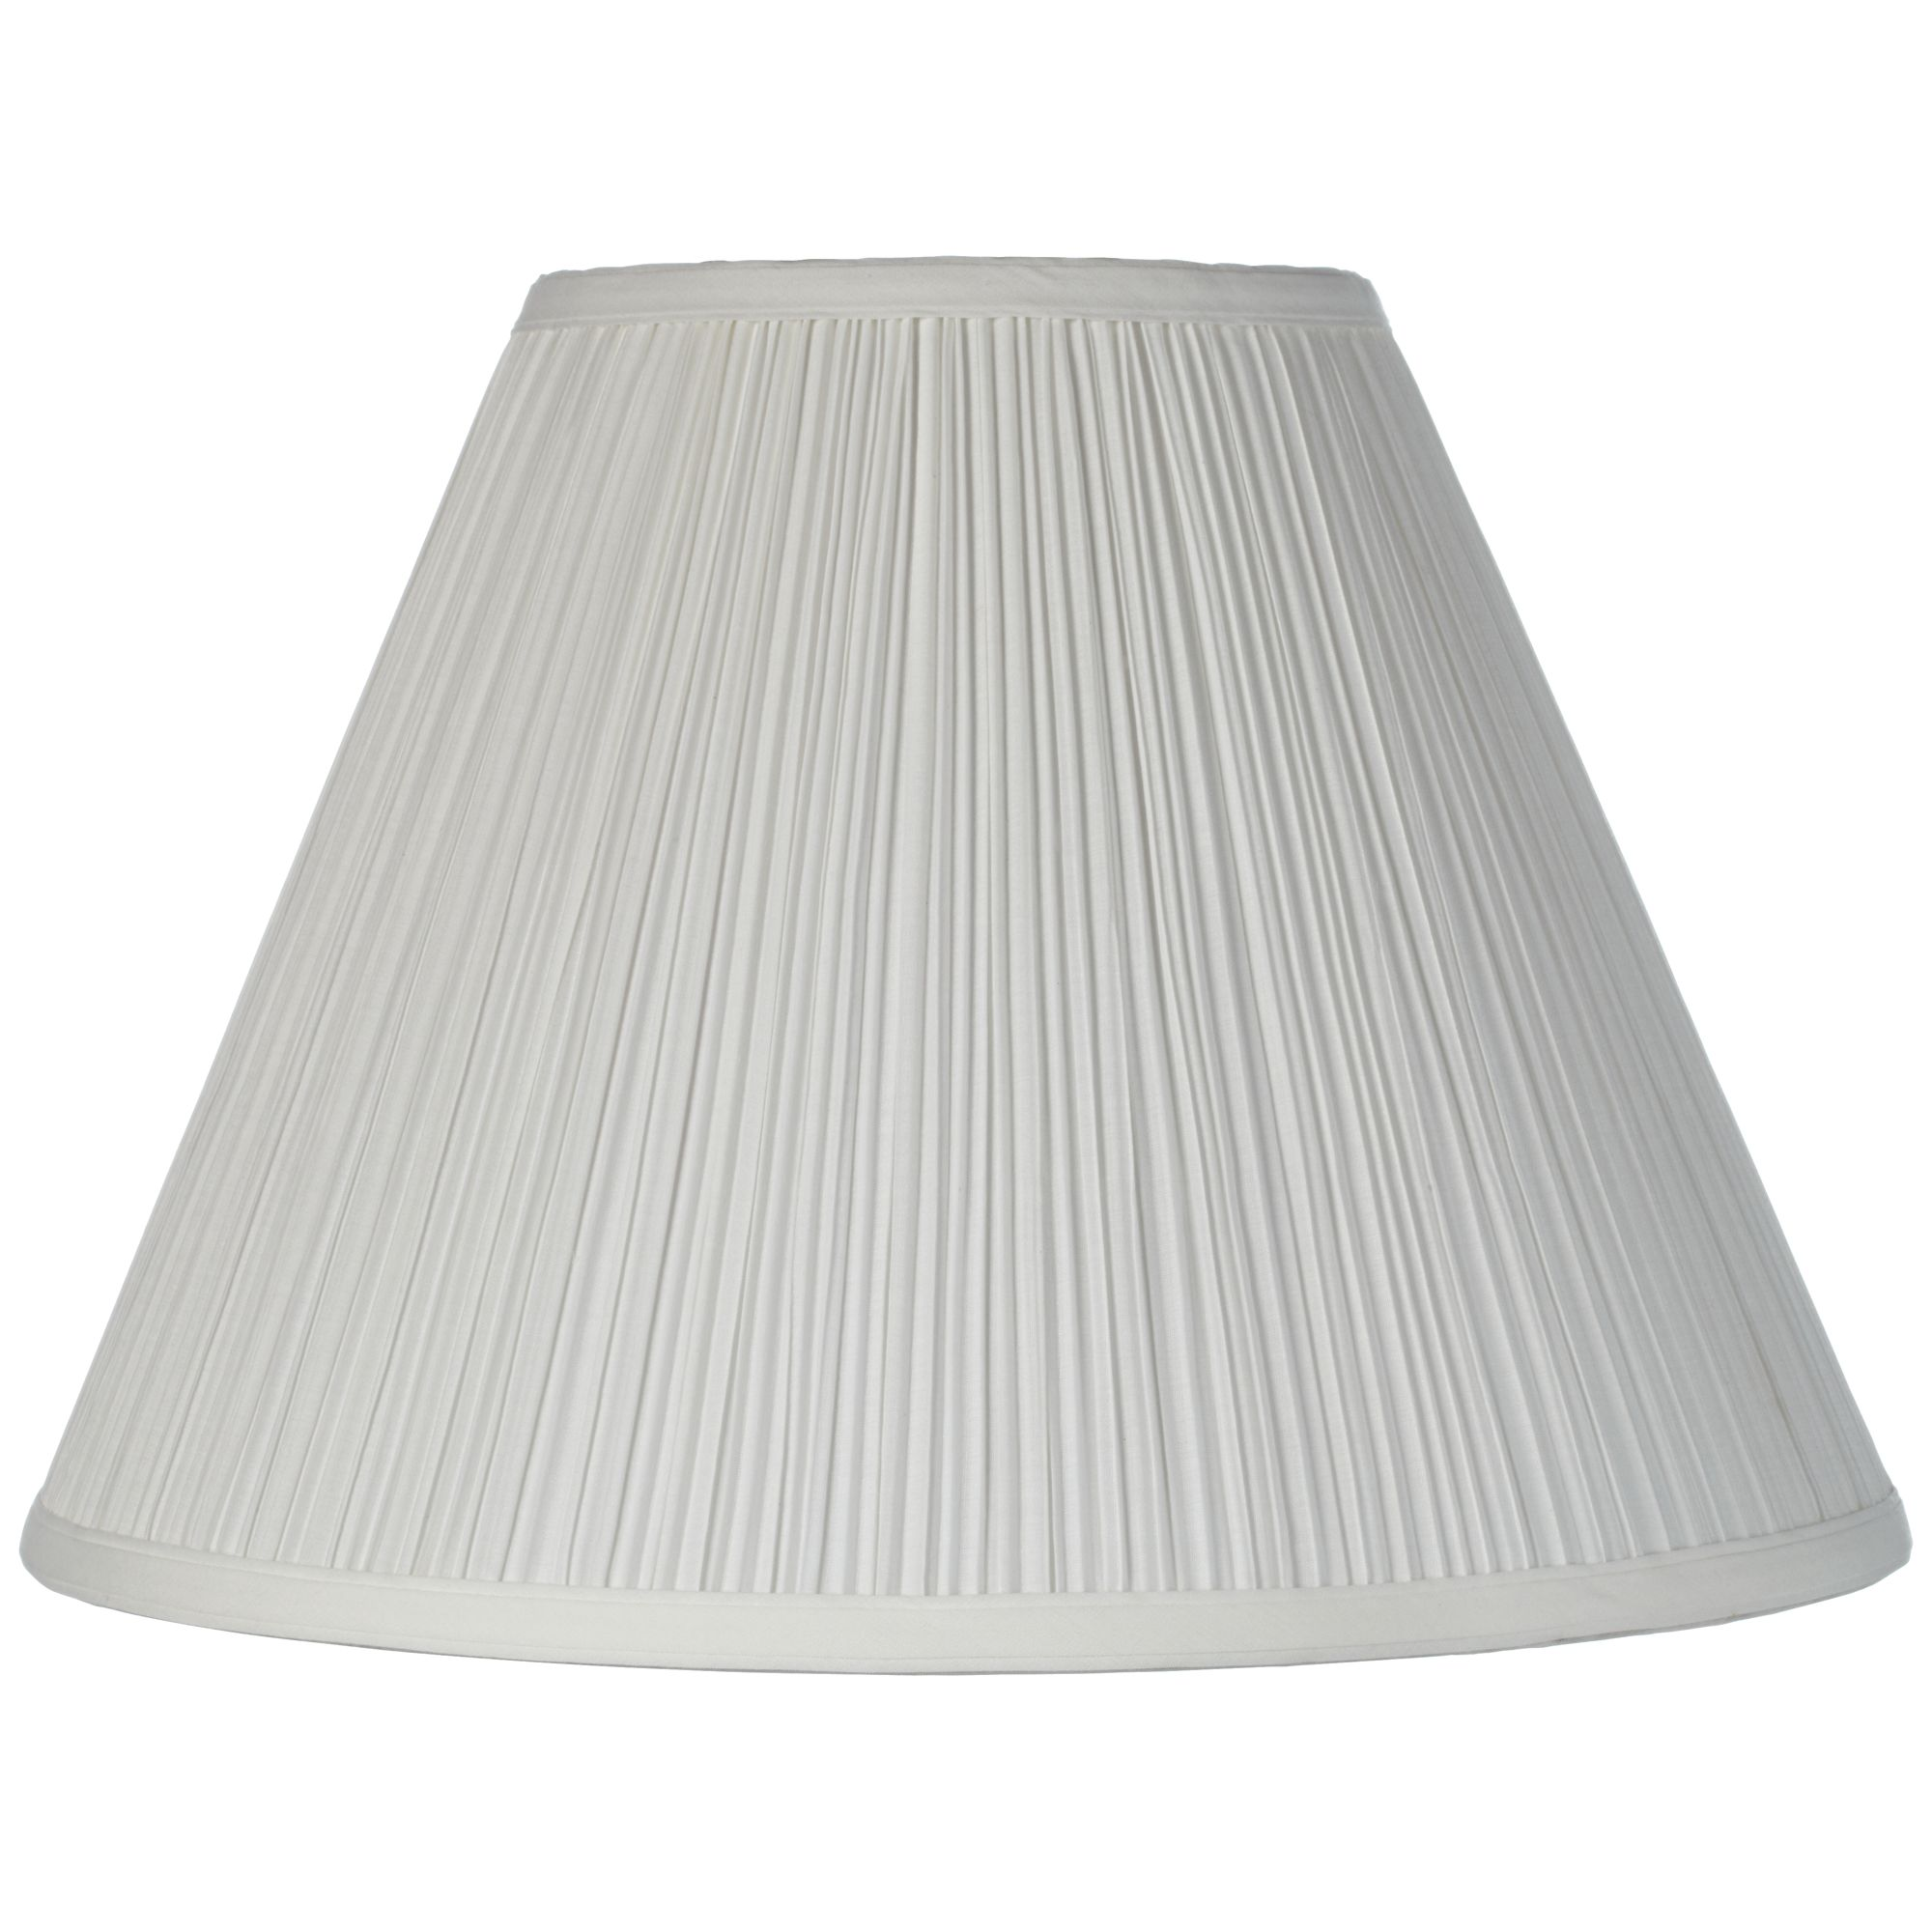 Brentwood Vintage Empire Lamp Shade with Harp Pleated Cone White Fabric 6.5x15x11 - Spider